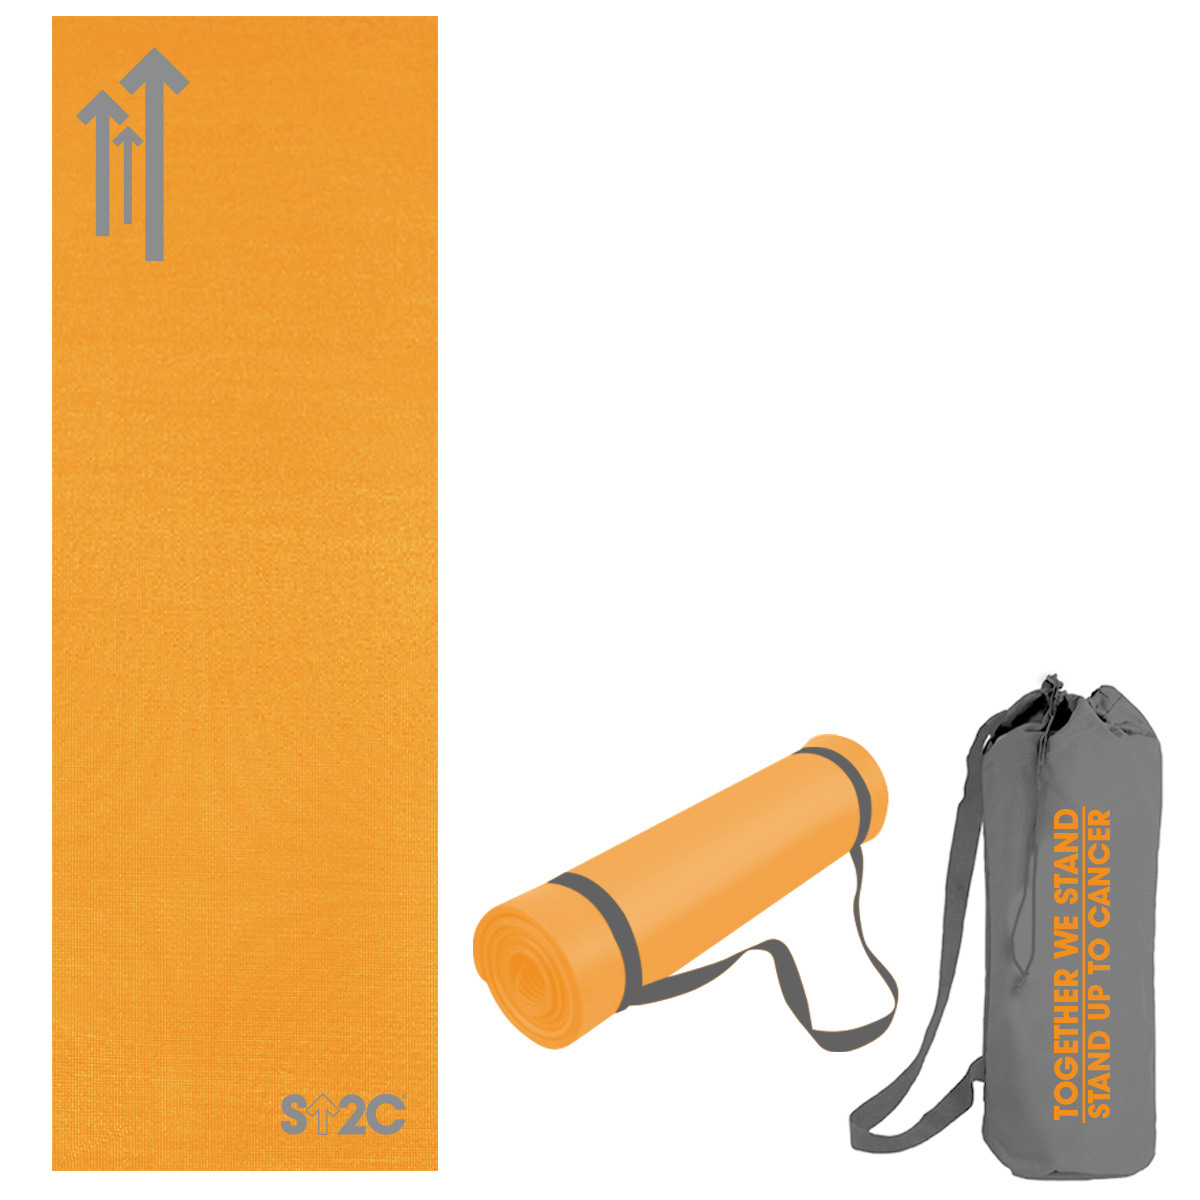 "SU2C 72"" Yoga Mat, Strap and Carrying Case"